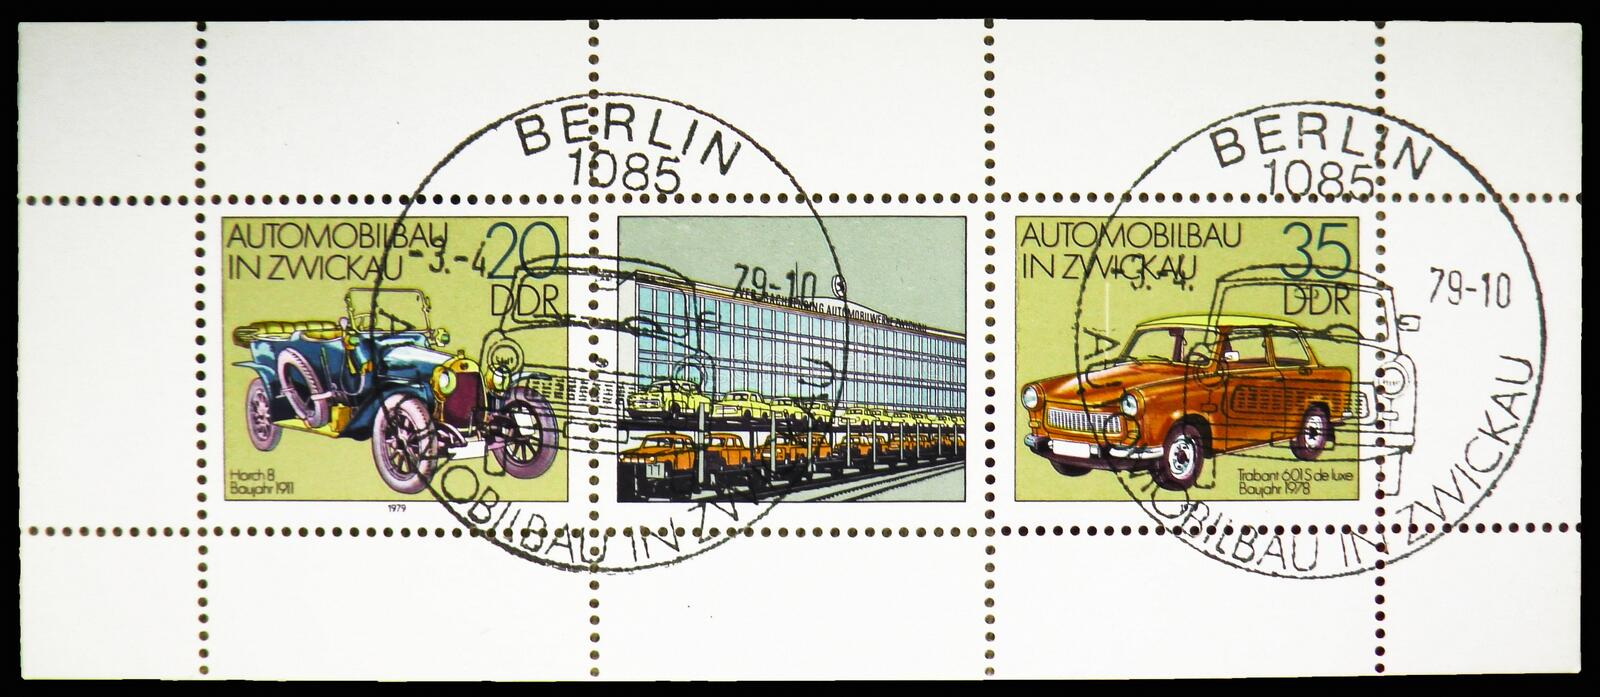 Horch 8/Trabant 601 S, Automobile In Zwickau serie, circa 1979. MOSCOW, RUSSIA - OCTOBER 21, 2018: A stamp printed in Germany shows Horch 8/Trabant 601 S stock photo